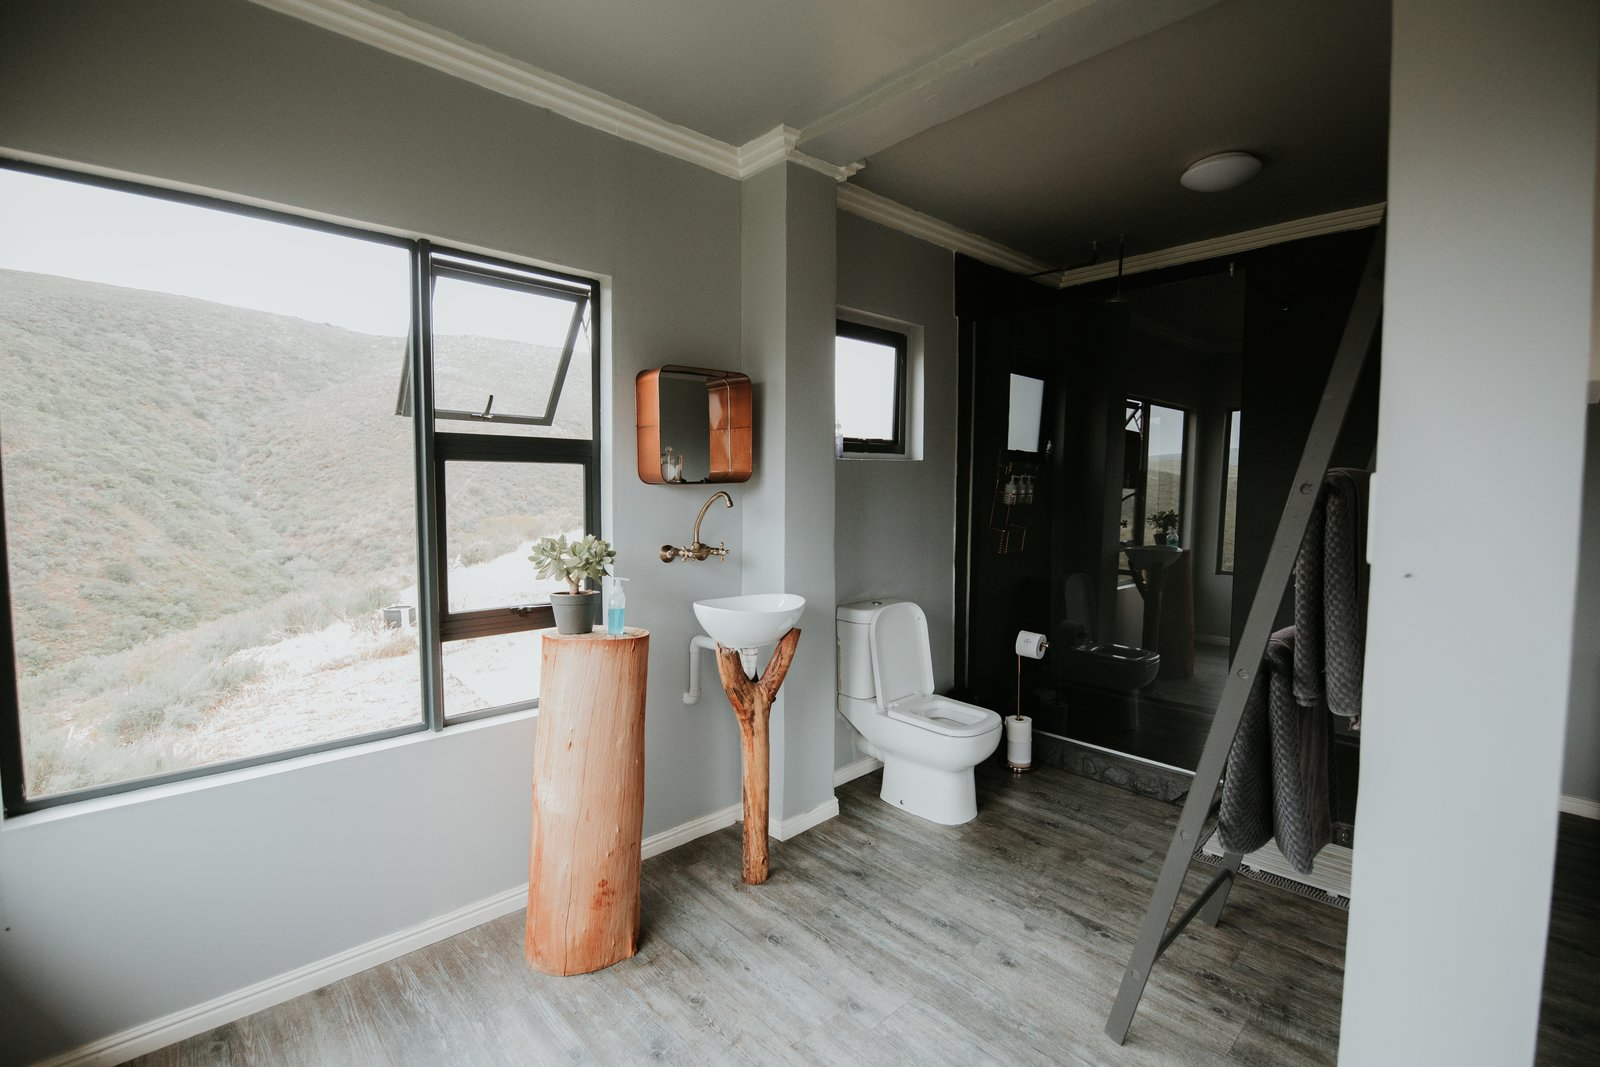 Bath, One Piece, Vessel, Dark Hardwood, Enclosed, Wood, and Ceiling  Best Bath One Piece Vessel Enclosed Photos from Take in the South African Countryside in This Shipping Container Eco-Cabin